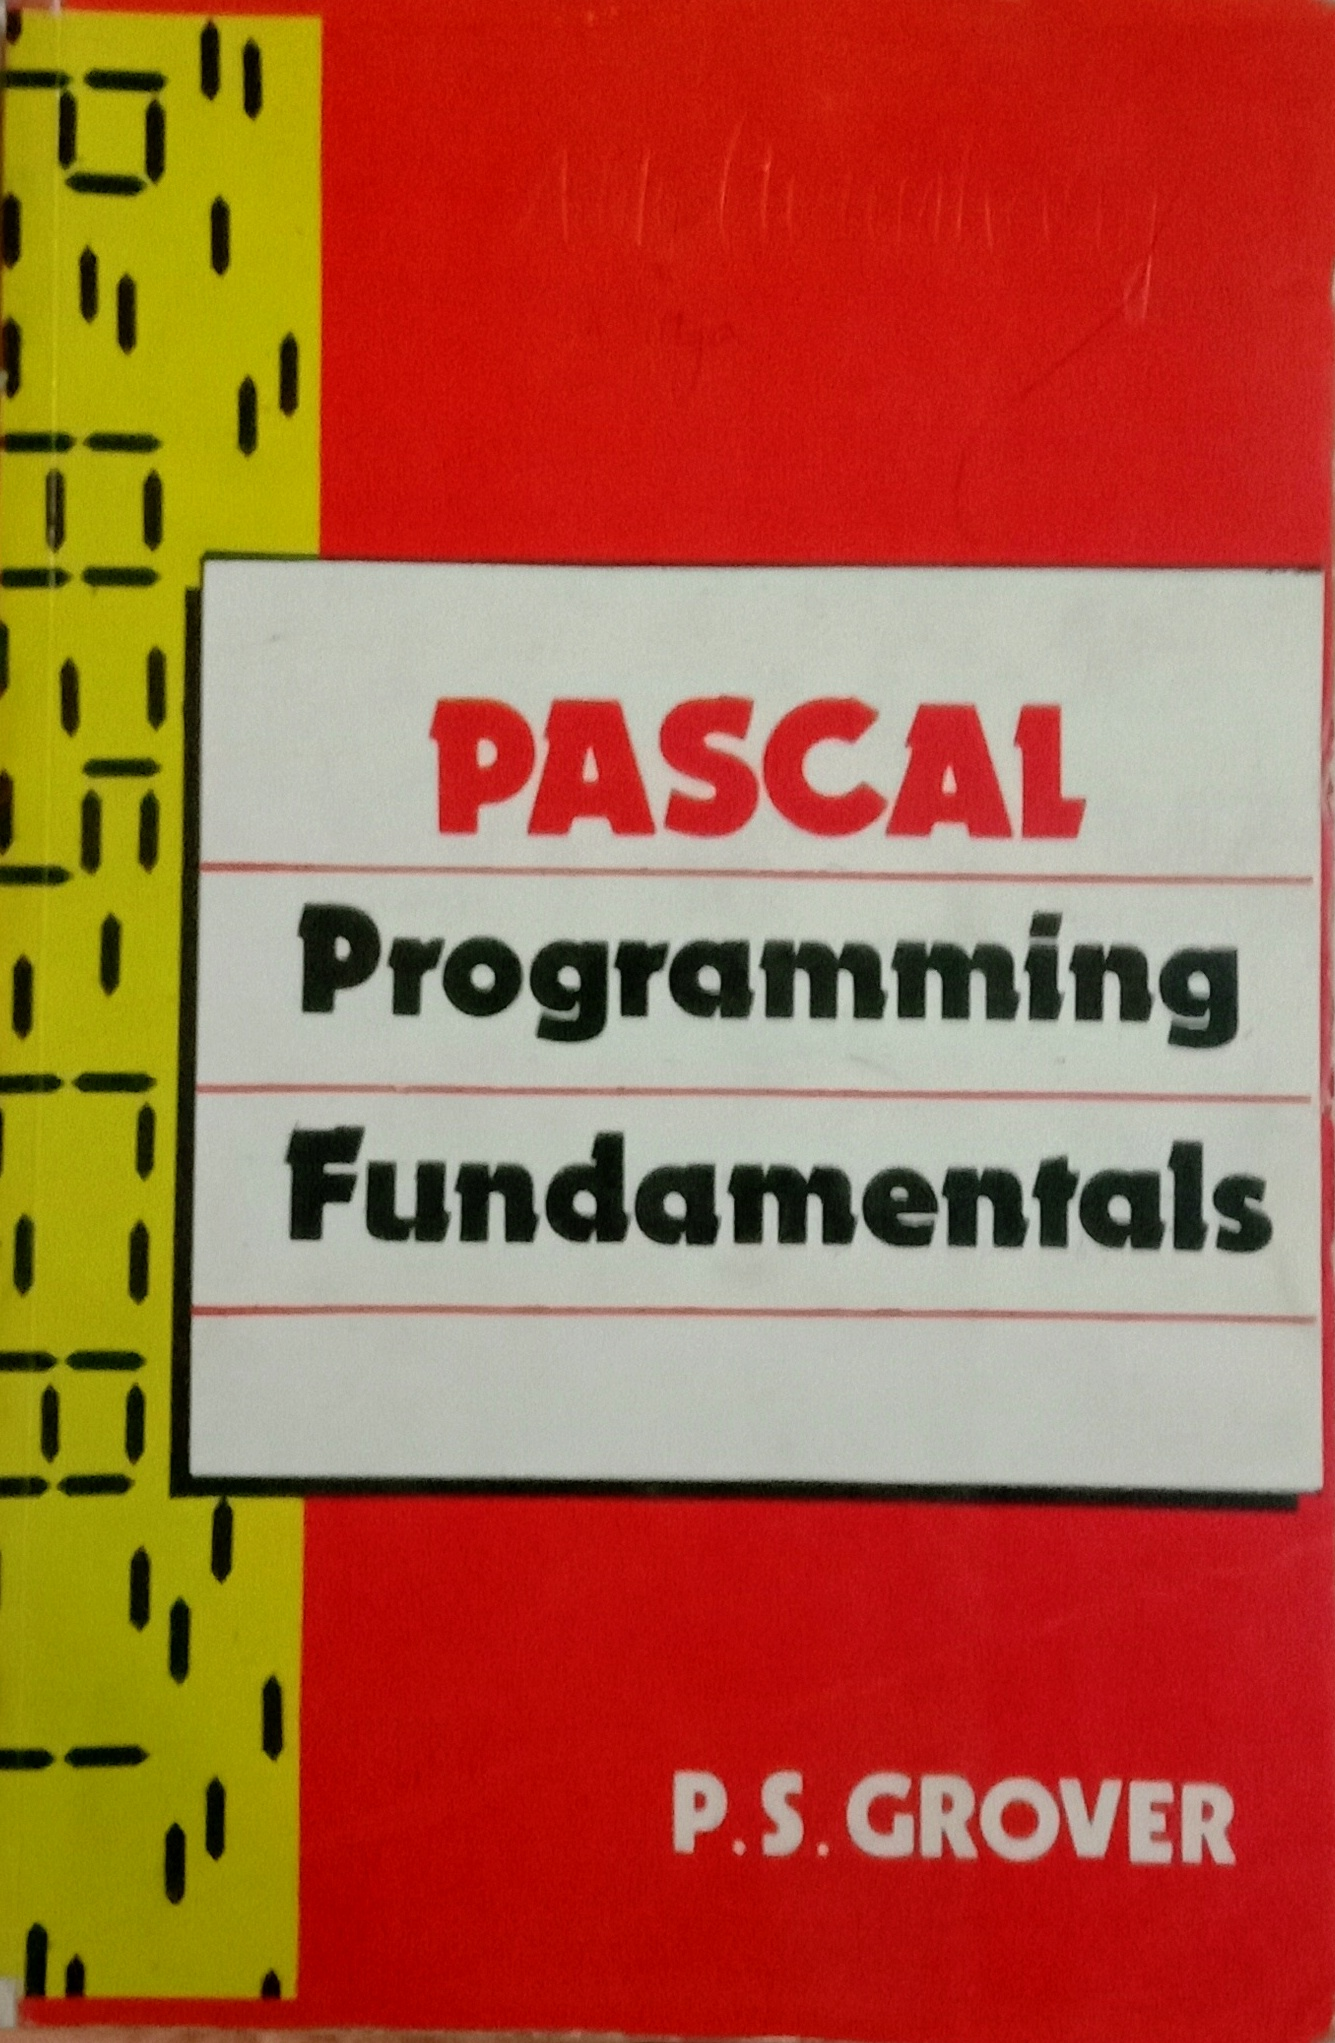 PASCAL Programming Fundamentals by P. S. Grover